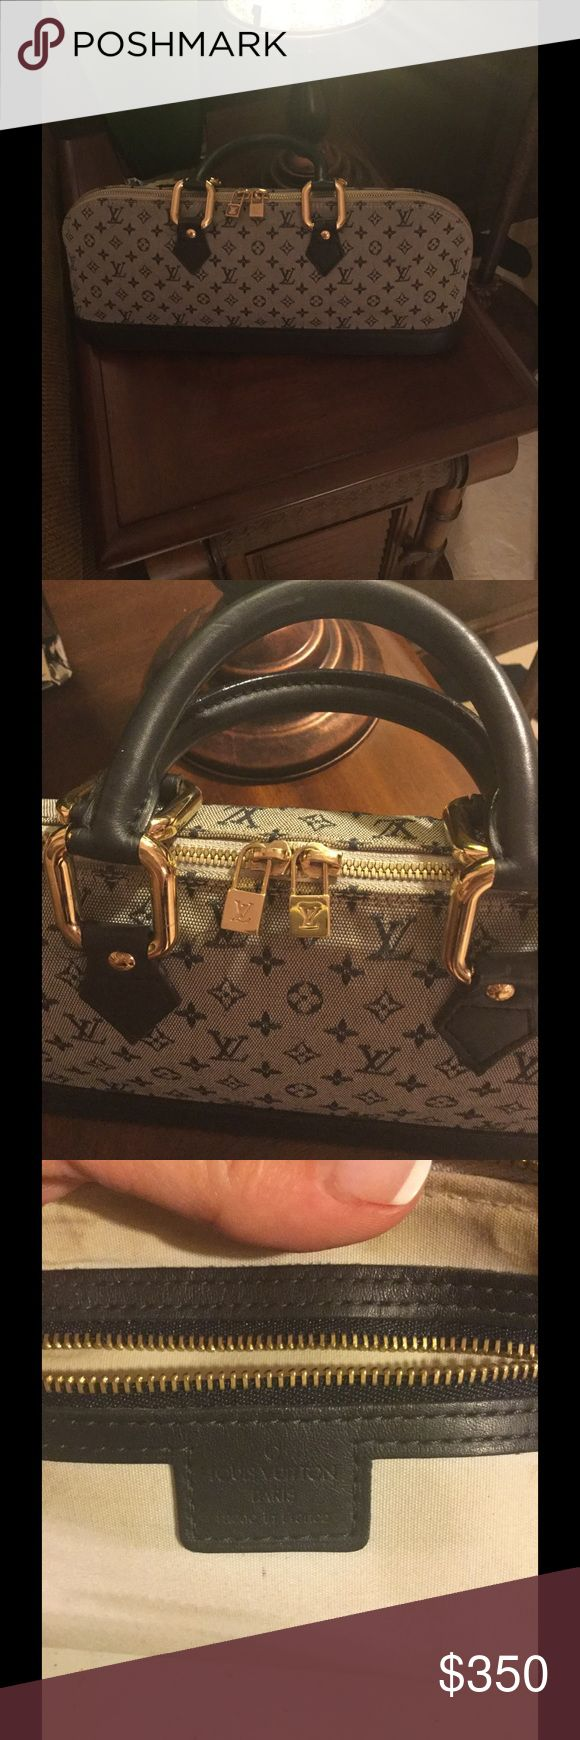 AUTH LOUIS VUITTON NAVY GRAY CANVAS ALMA BAG AUTH LOUIS VUITTON  NAVY GRAY CANVAS MONOGRAM ALMA LONG HANDBAG. GOOD CONDITION SMALL AMOUNT OF STAINS ON INSIDE AND SMALL SCRATCHES ON BOTTOM SEE LAST THREE PICTURES Louis Vuitton Bags Satchels